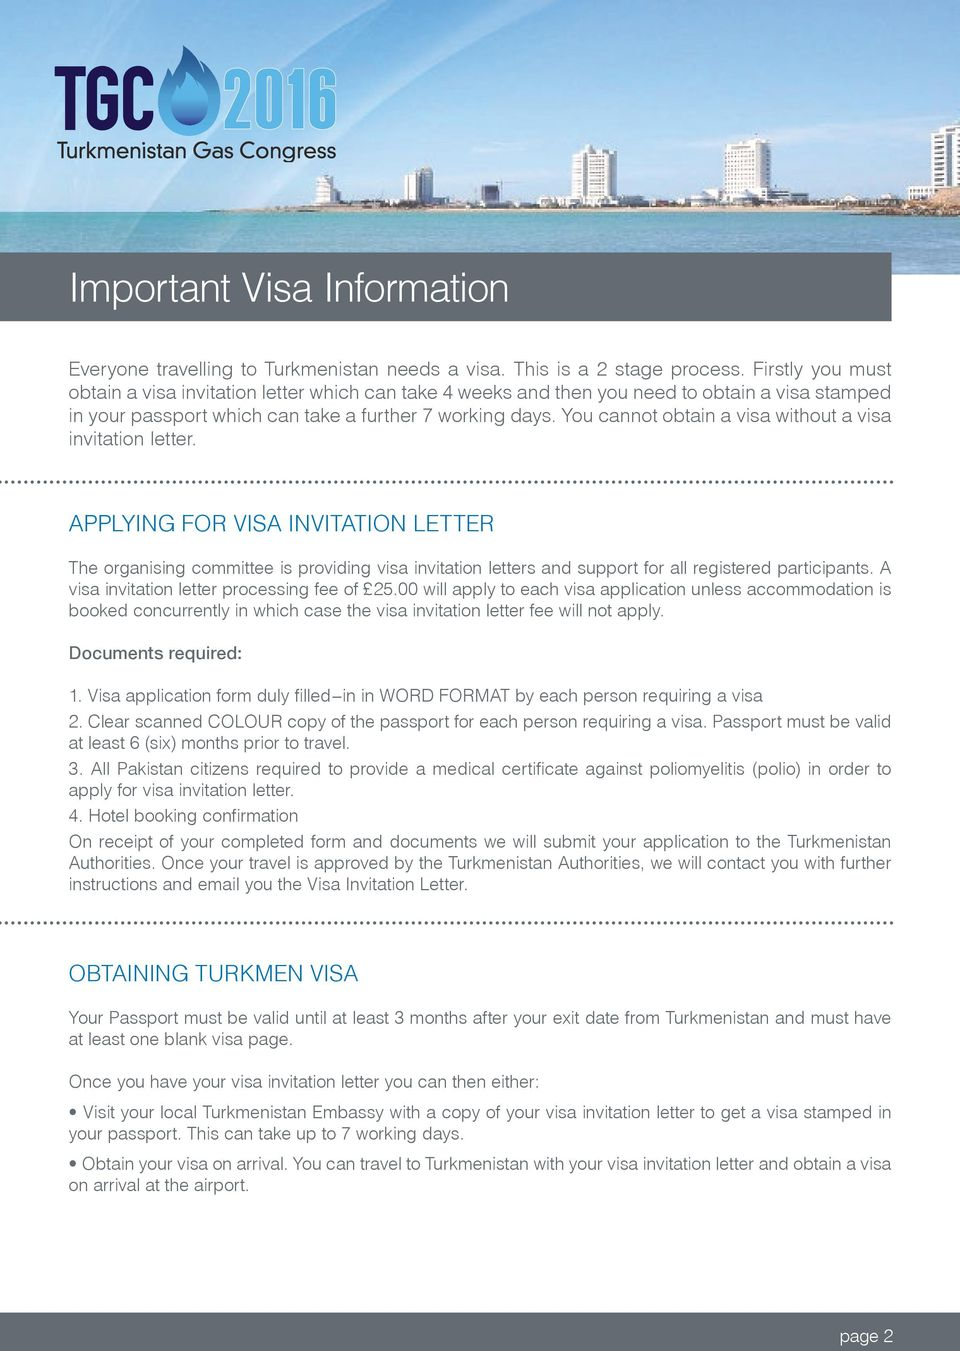 You cannot obtain a visa without a visa invitation letter.